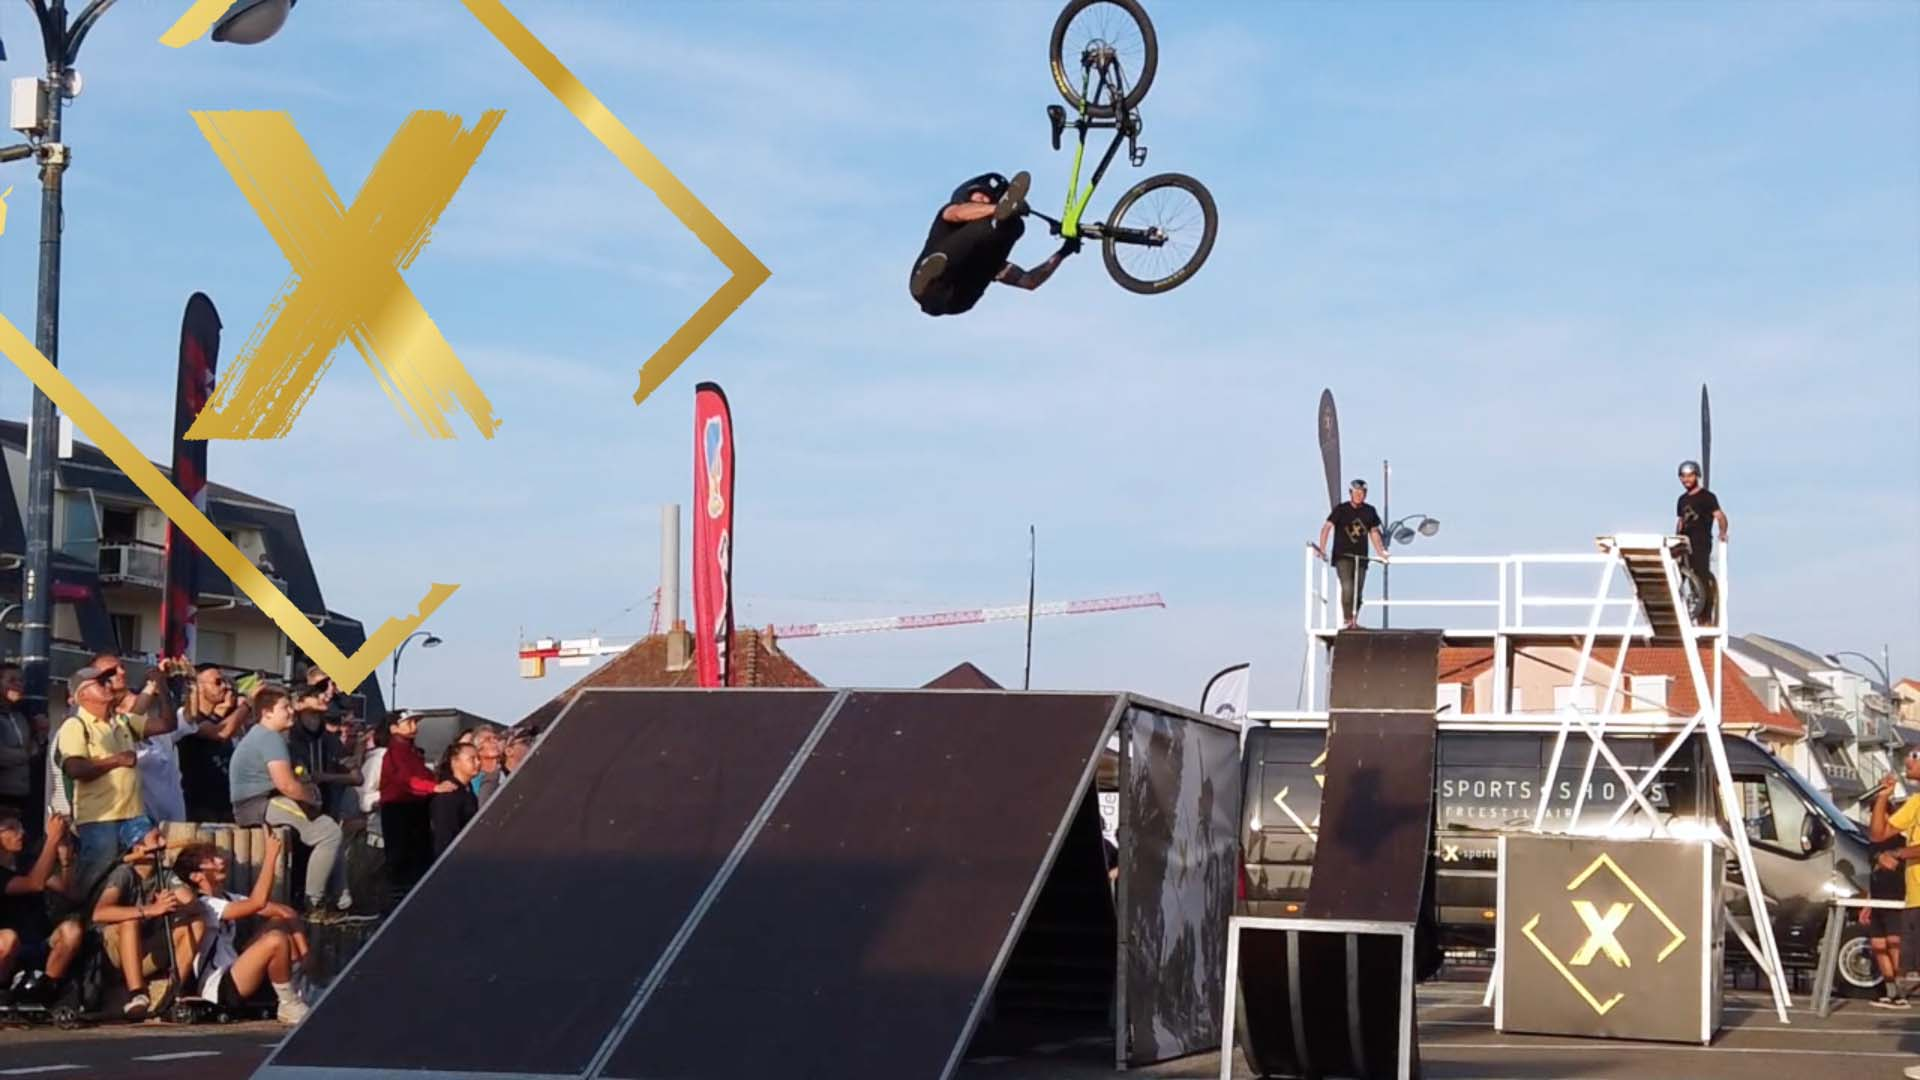 X-sports shows Freerider Fest 2019